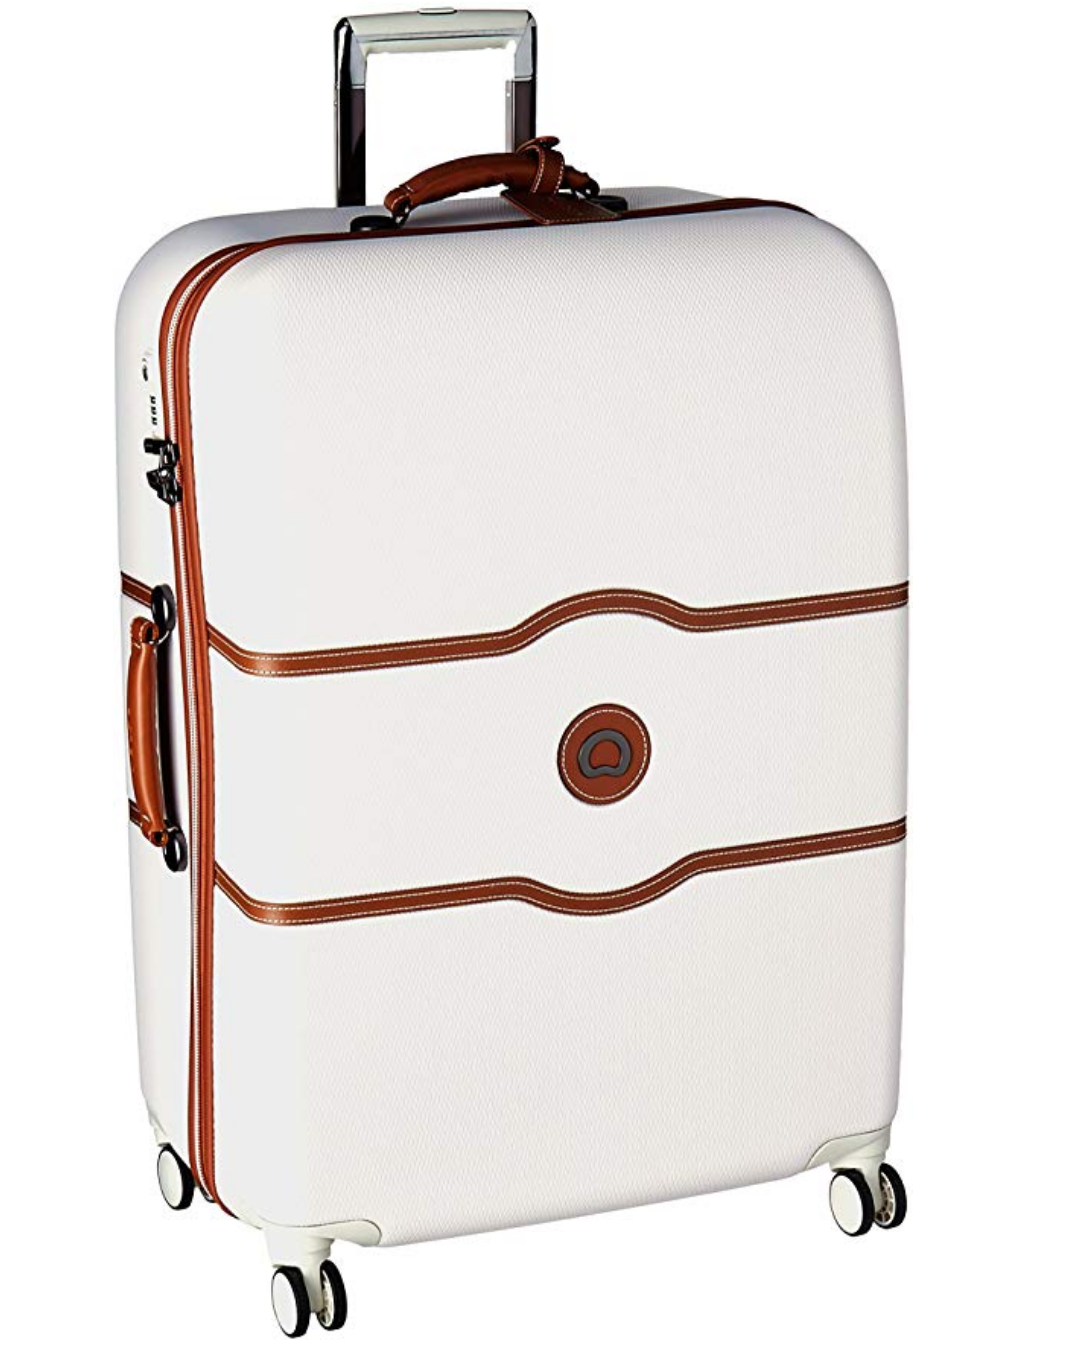 Delsey Suitcase.png